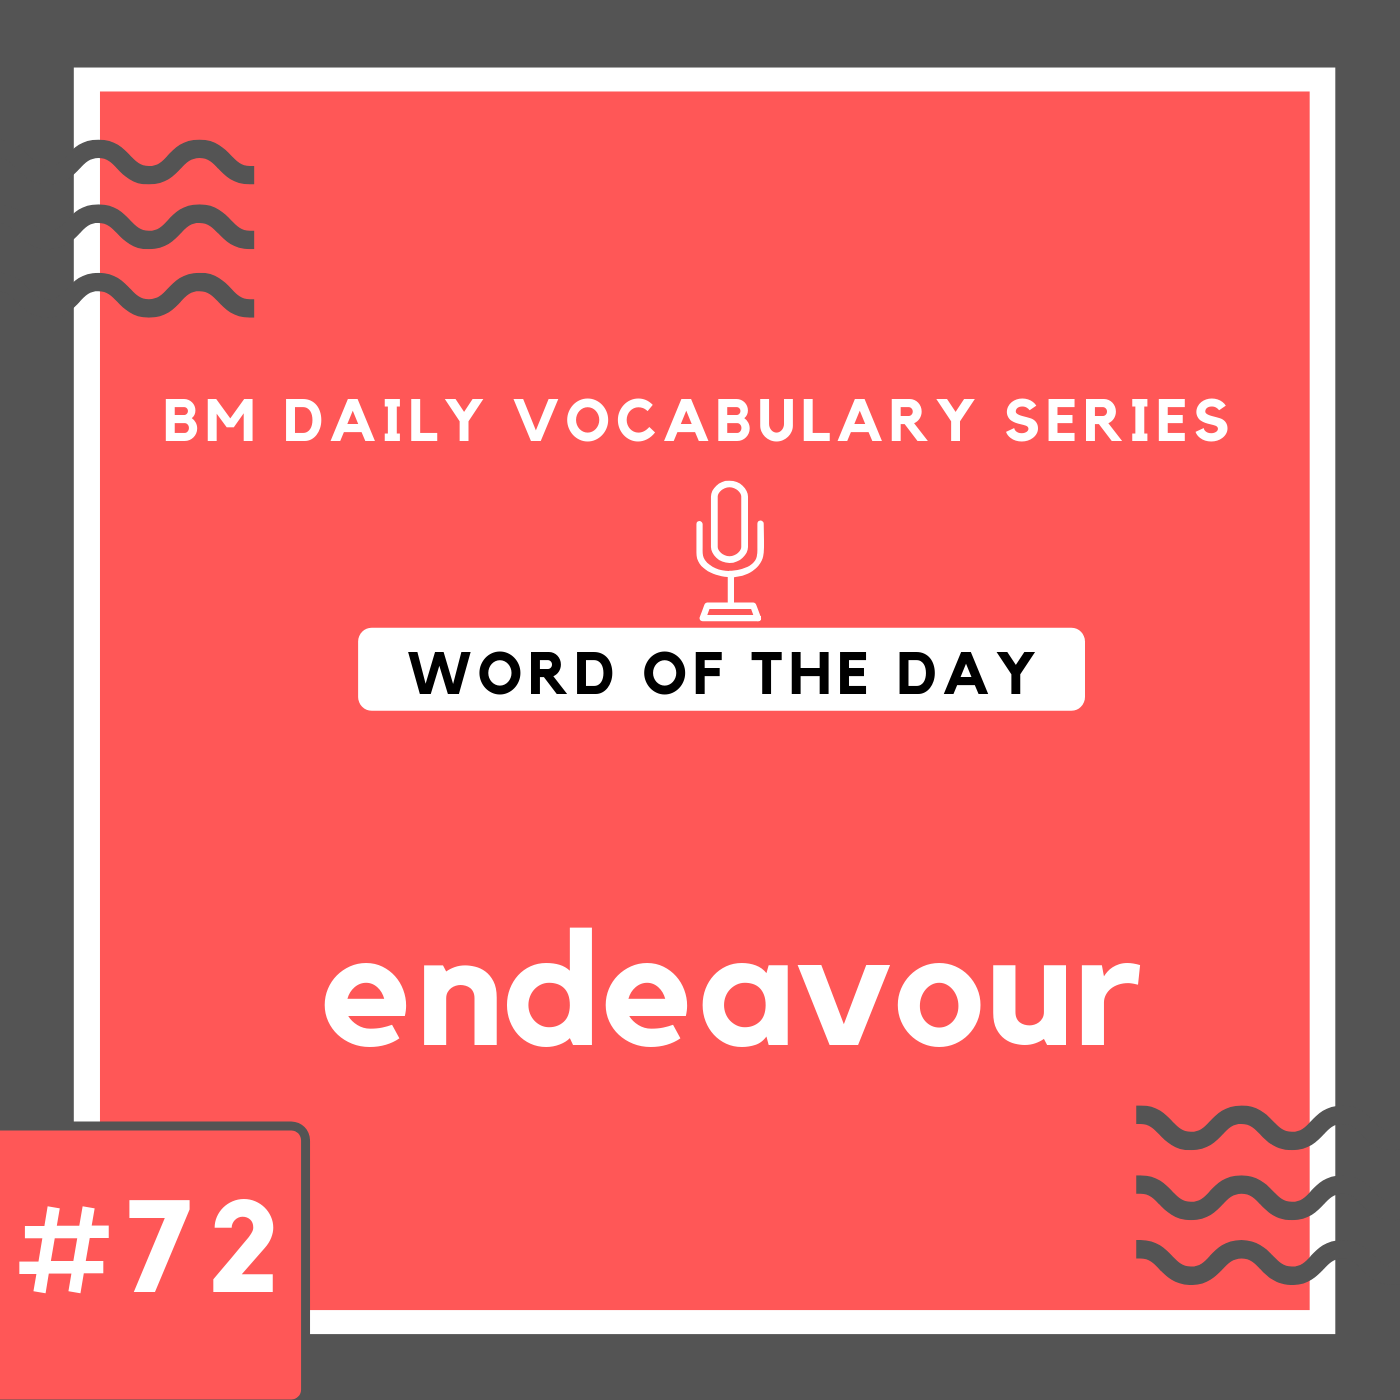 200 BM Daily Vocabulary #72 | endeavour